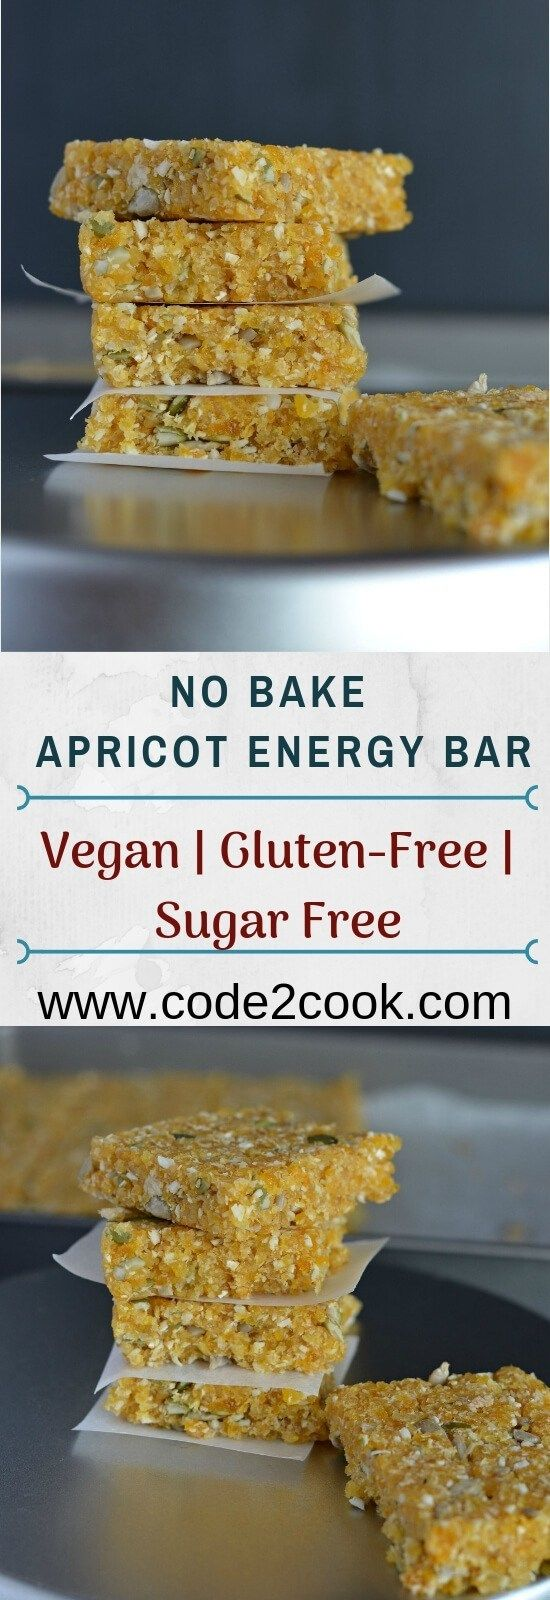 No Bake Apricot Energy Bar Healthy Vegan And Gluten Free